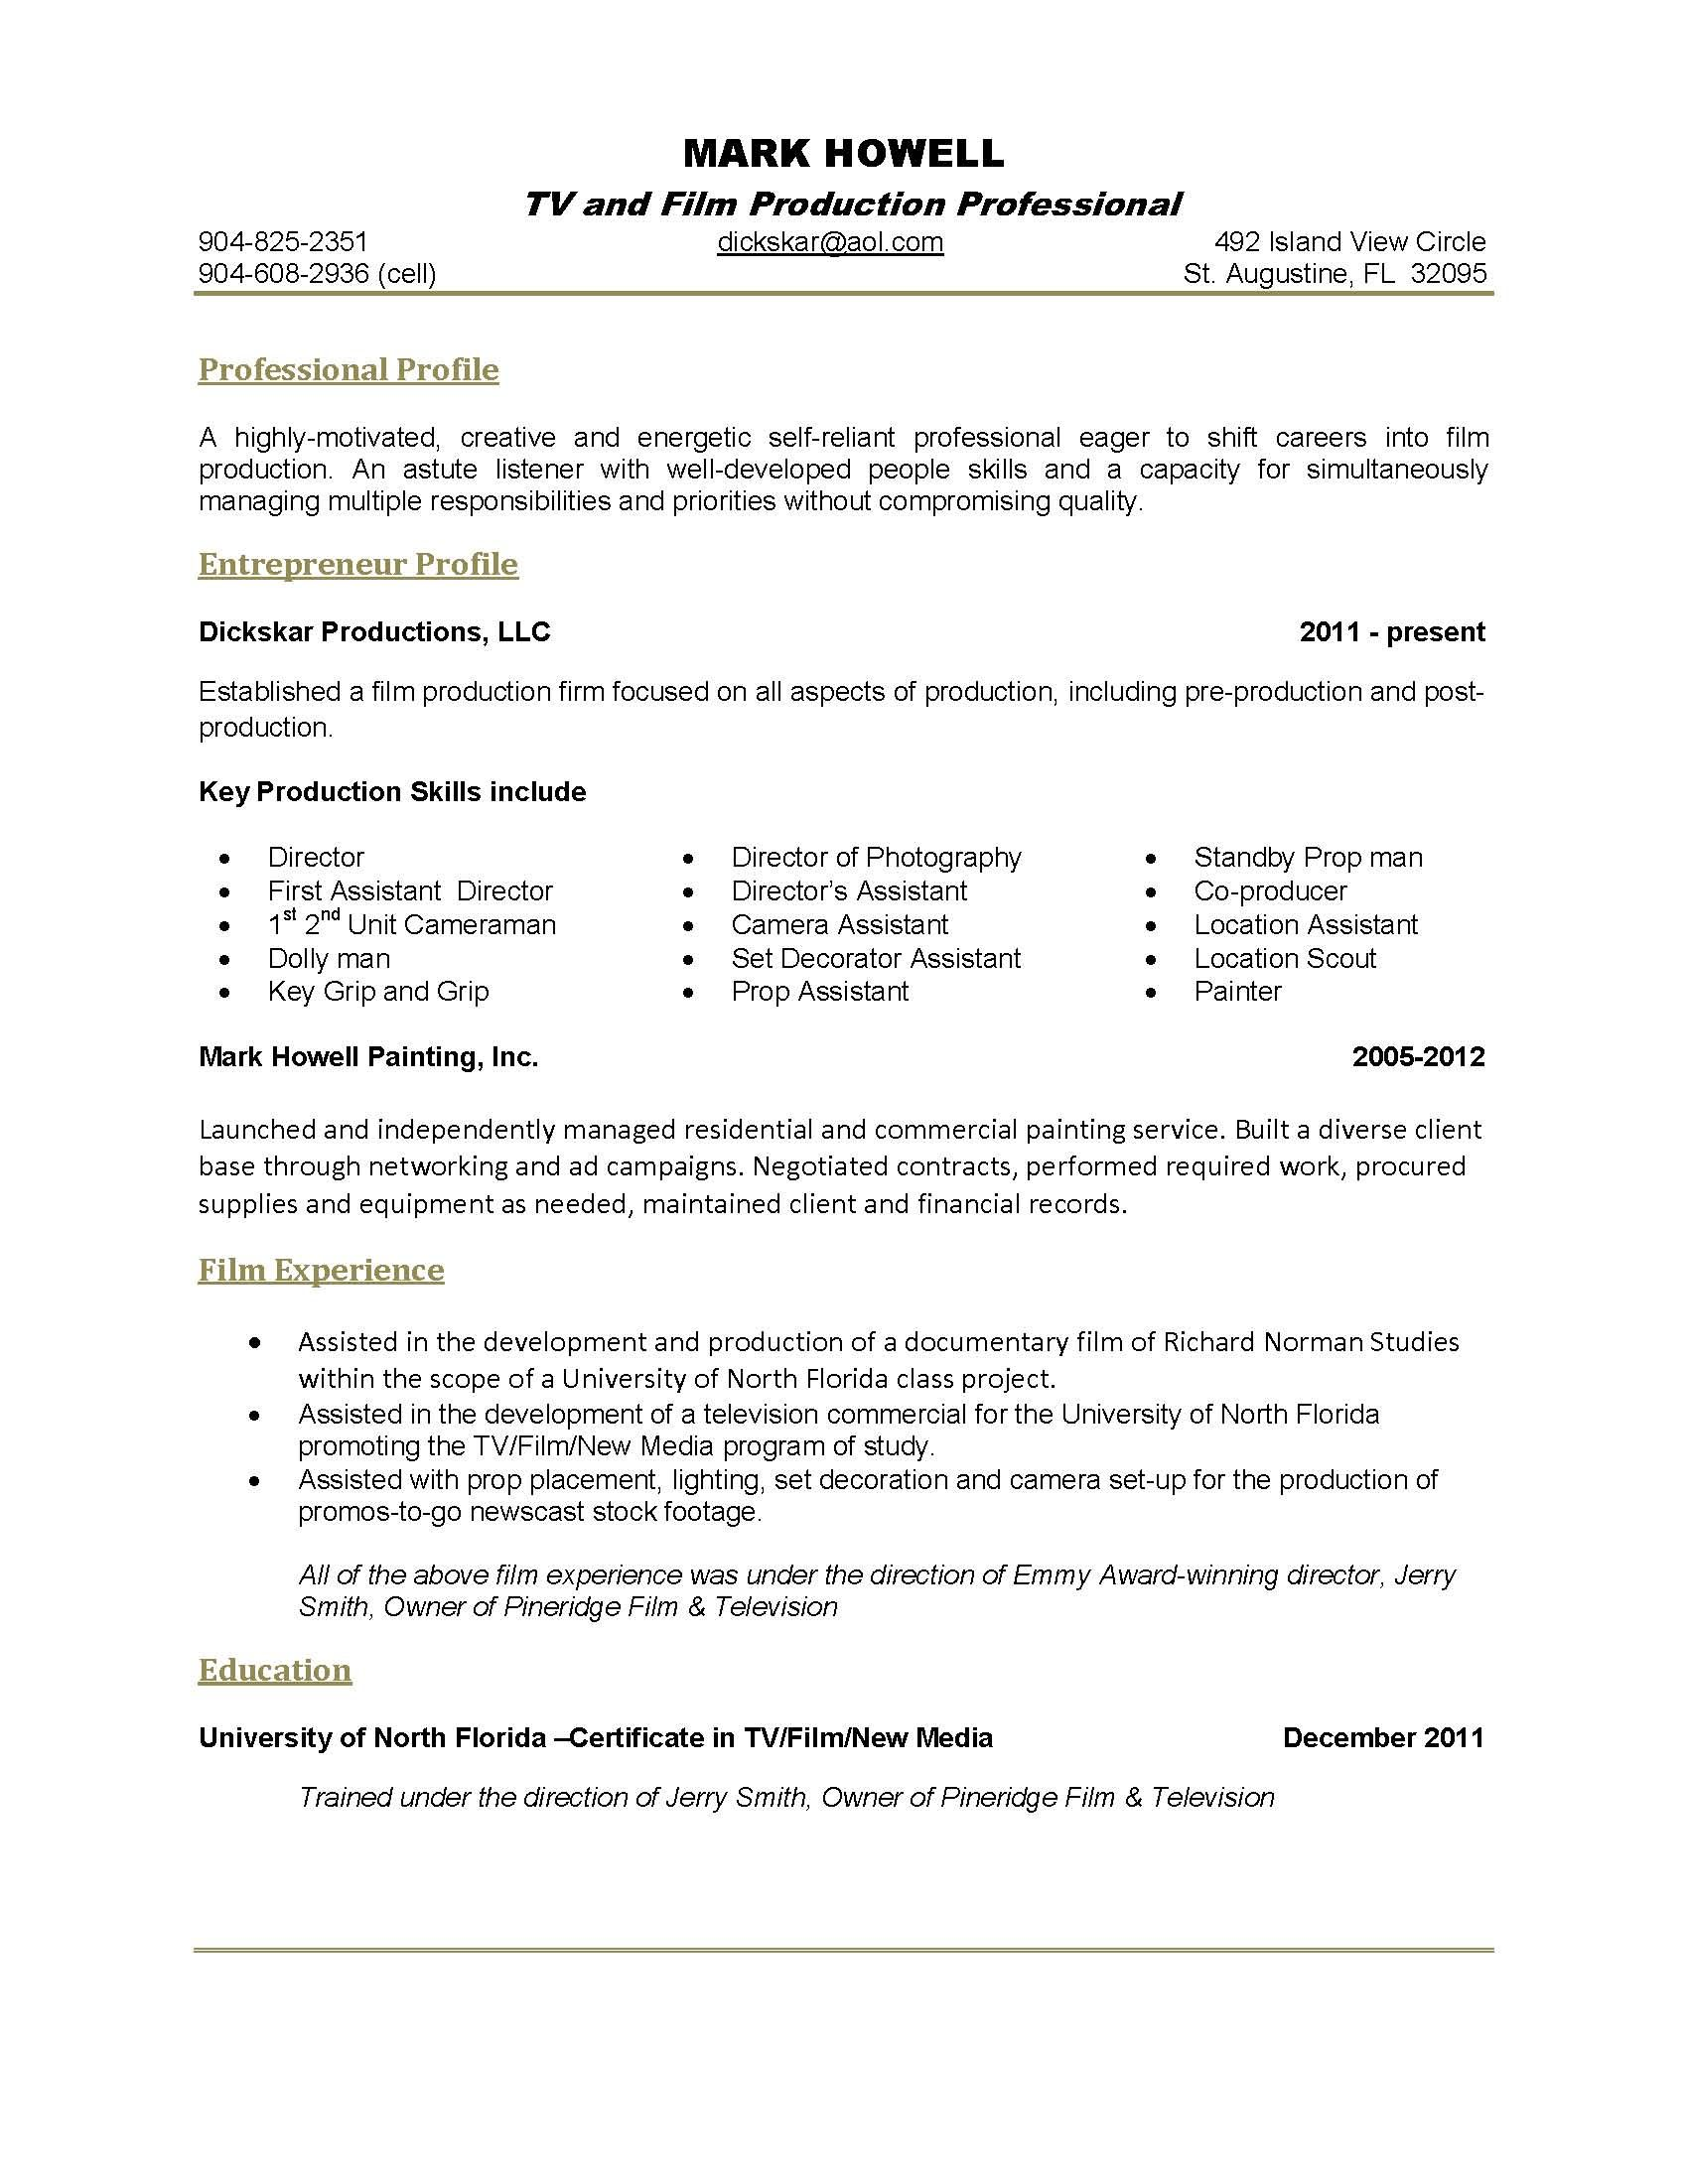 Film Producer Resume 1 Page  Resume Examples  Pinterest  Resume Examples